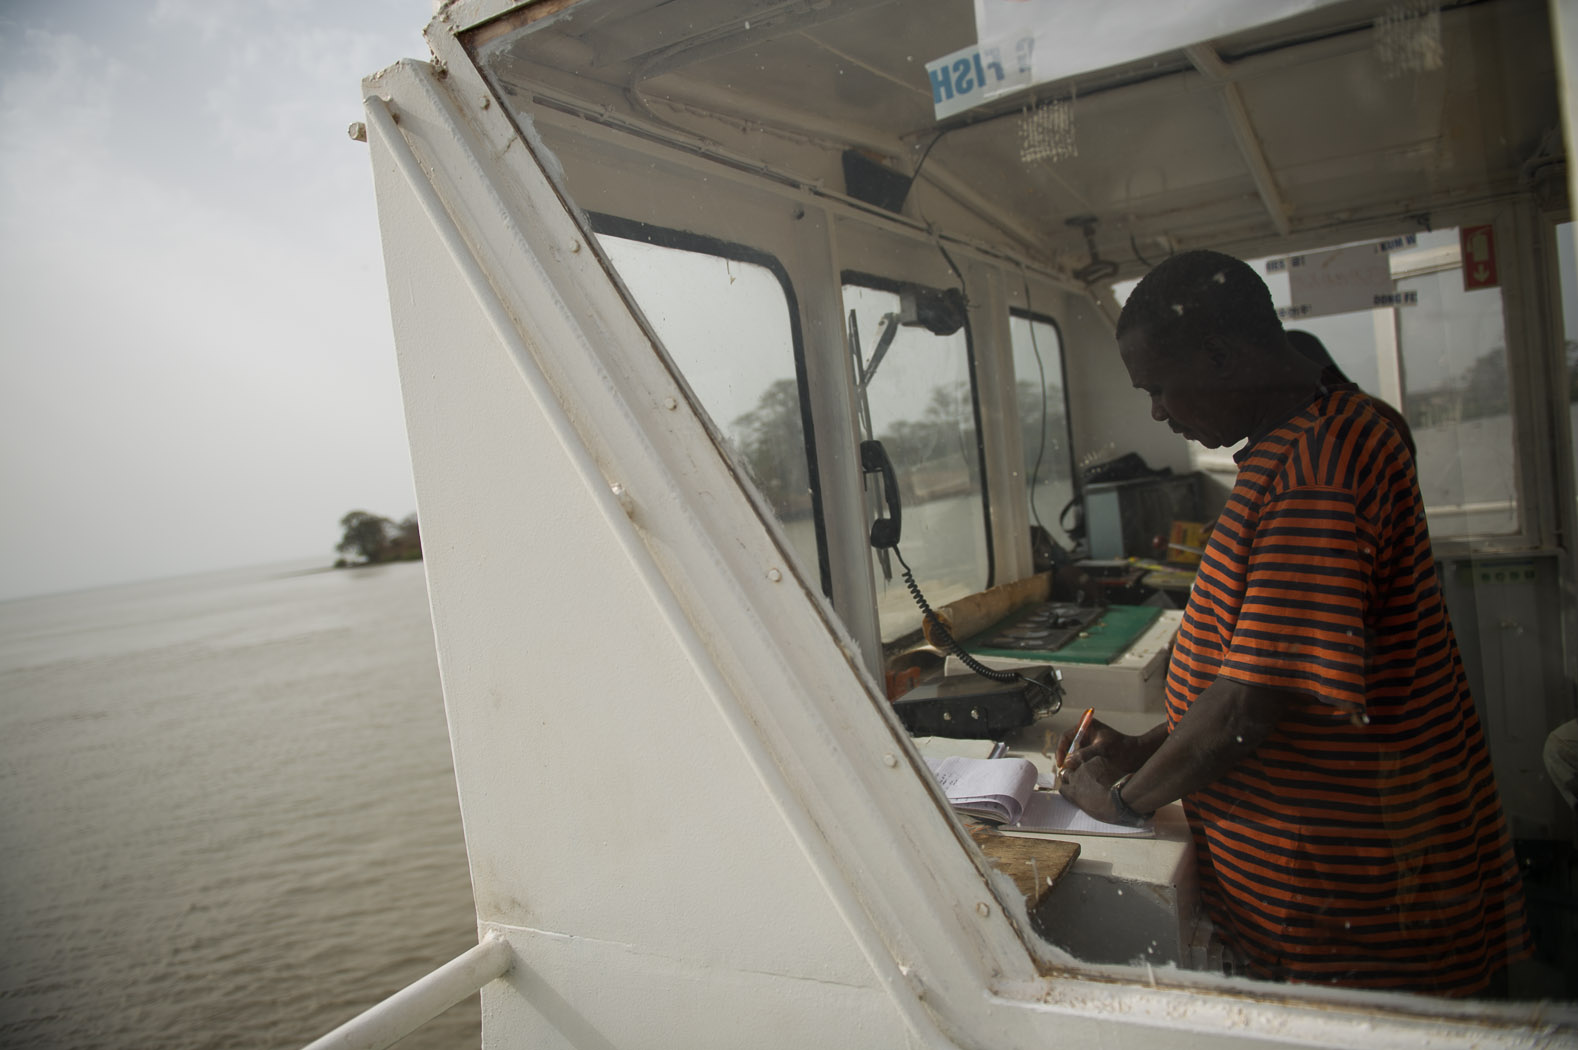 Guinea Bissau consists of many islands, both inhabited and uninhabited, which provide a poorly surveilled drop-off point for the trans-Atlantic drug trade.